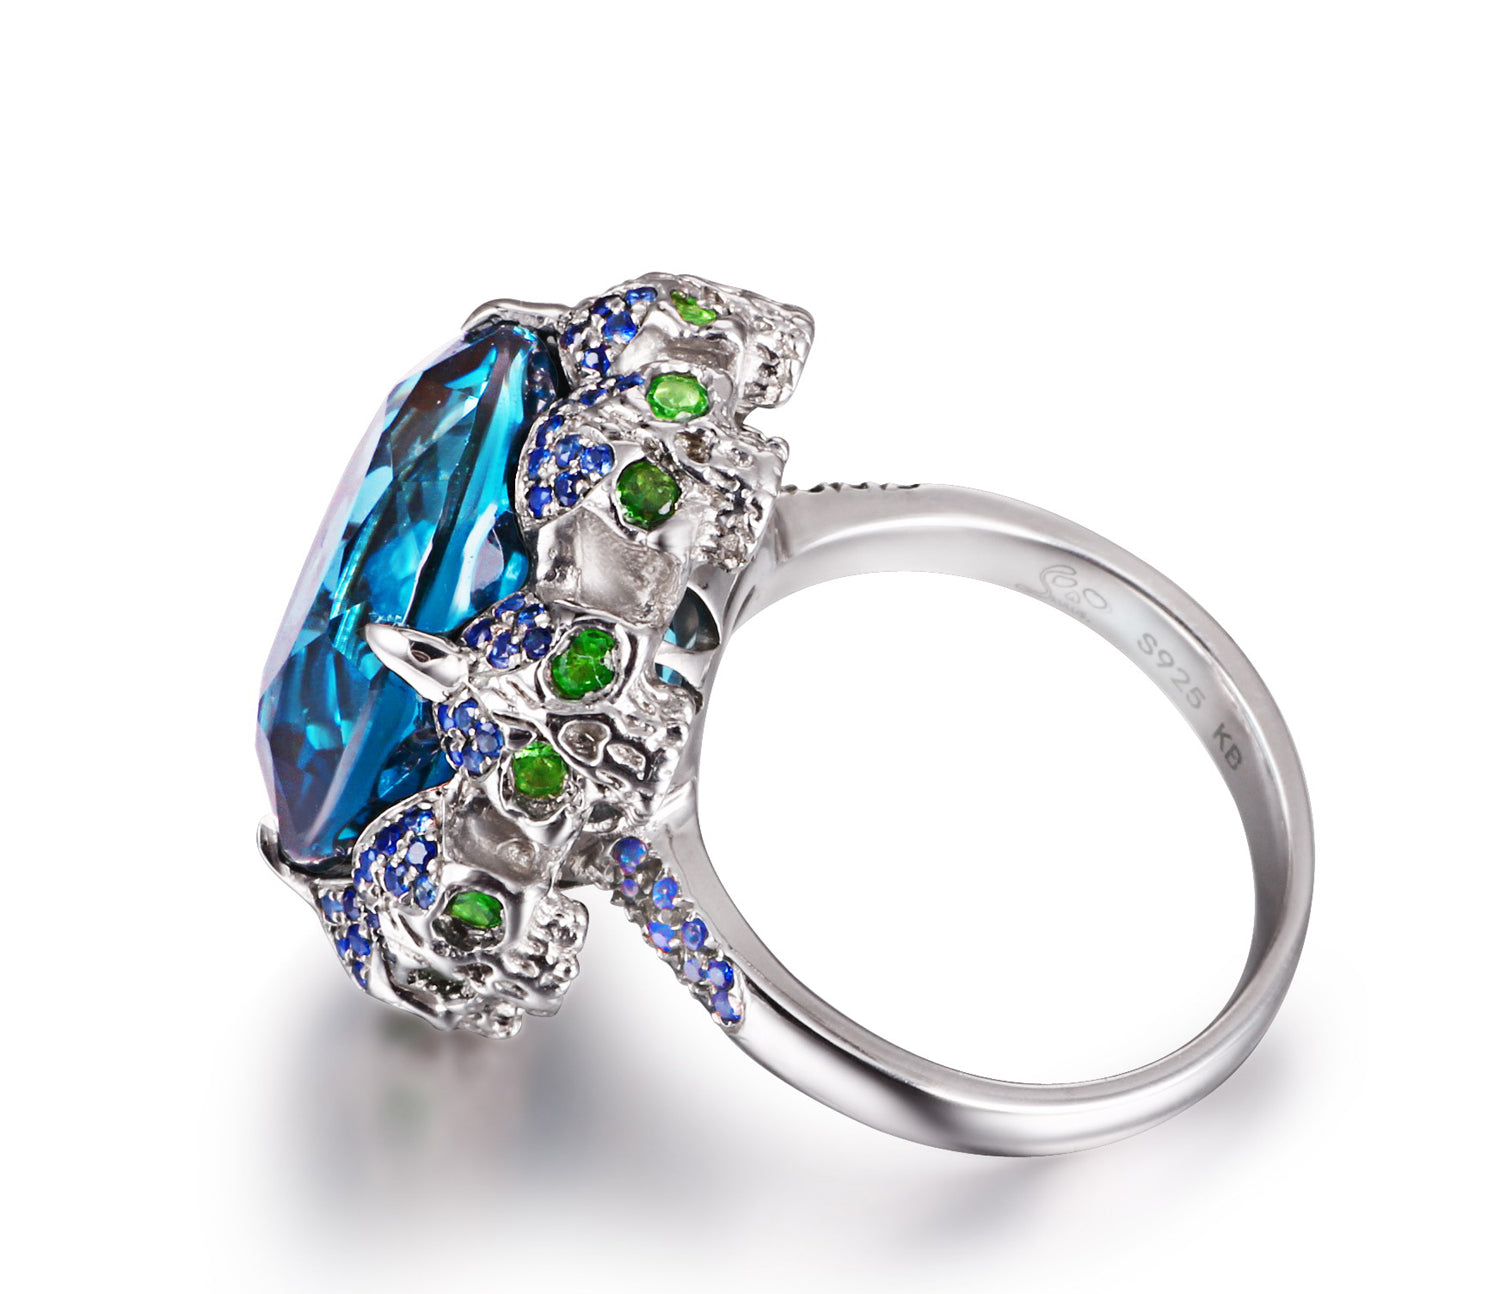 London Blue Topaz with Sapphire and Tsavorite in Sterling Silver Skulls Ring - Skullis Exclusive